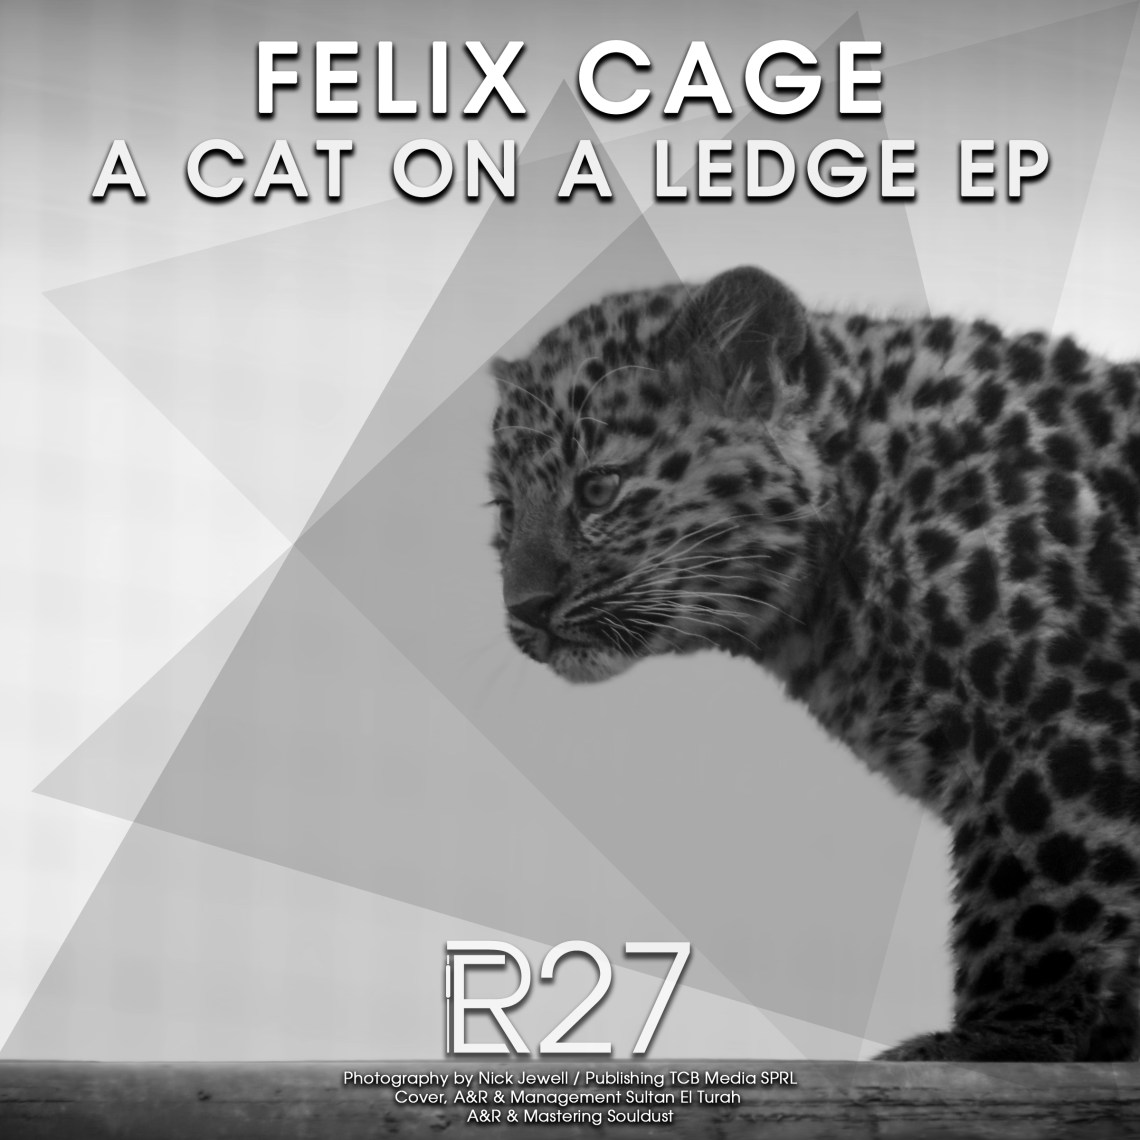 ER027 - Felix Cage - A Cat On A Ledge EP (incl. Superdrums Remix) - Electronical Reeds